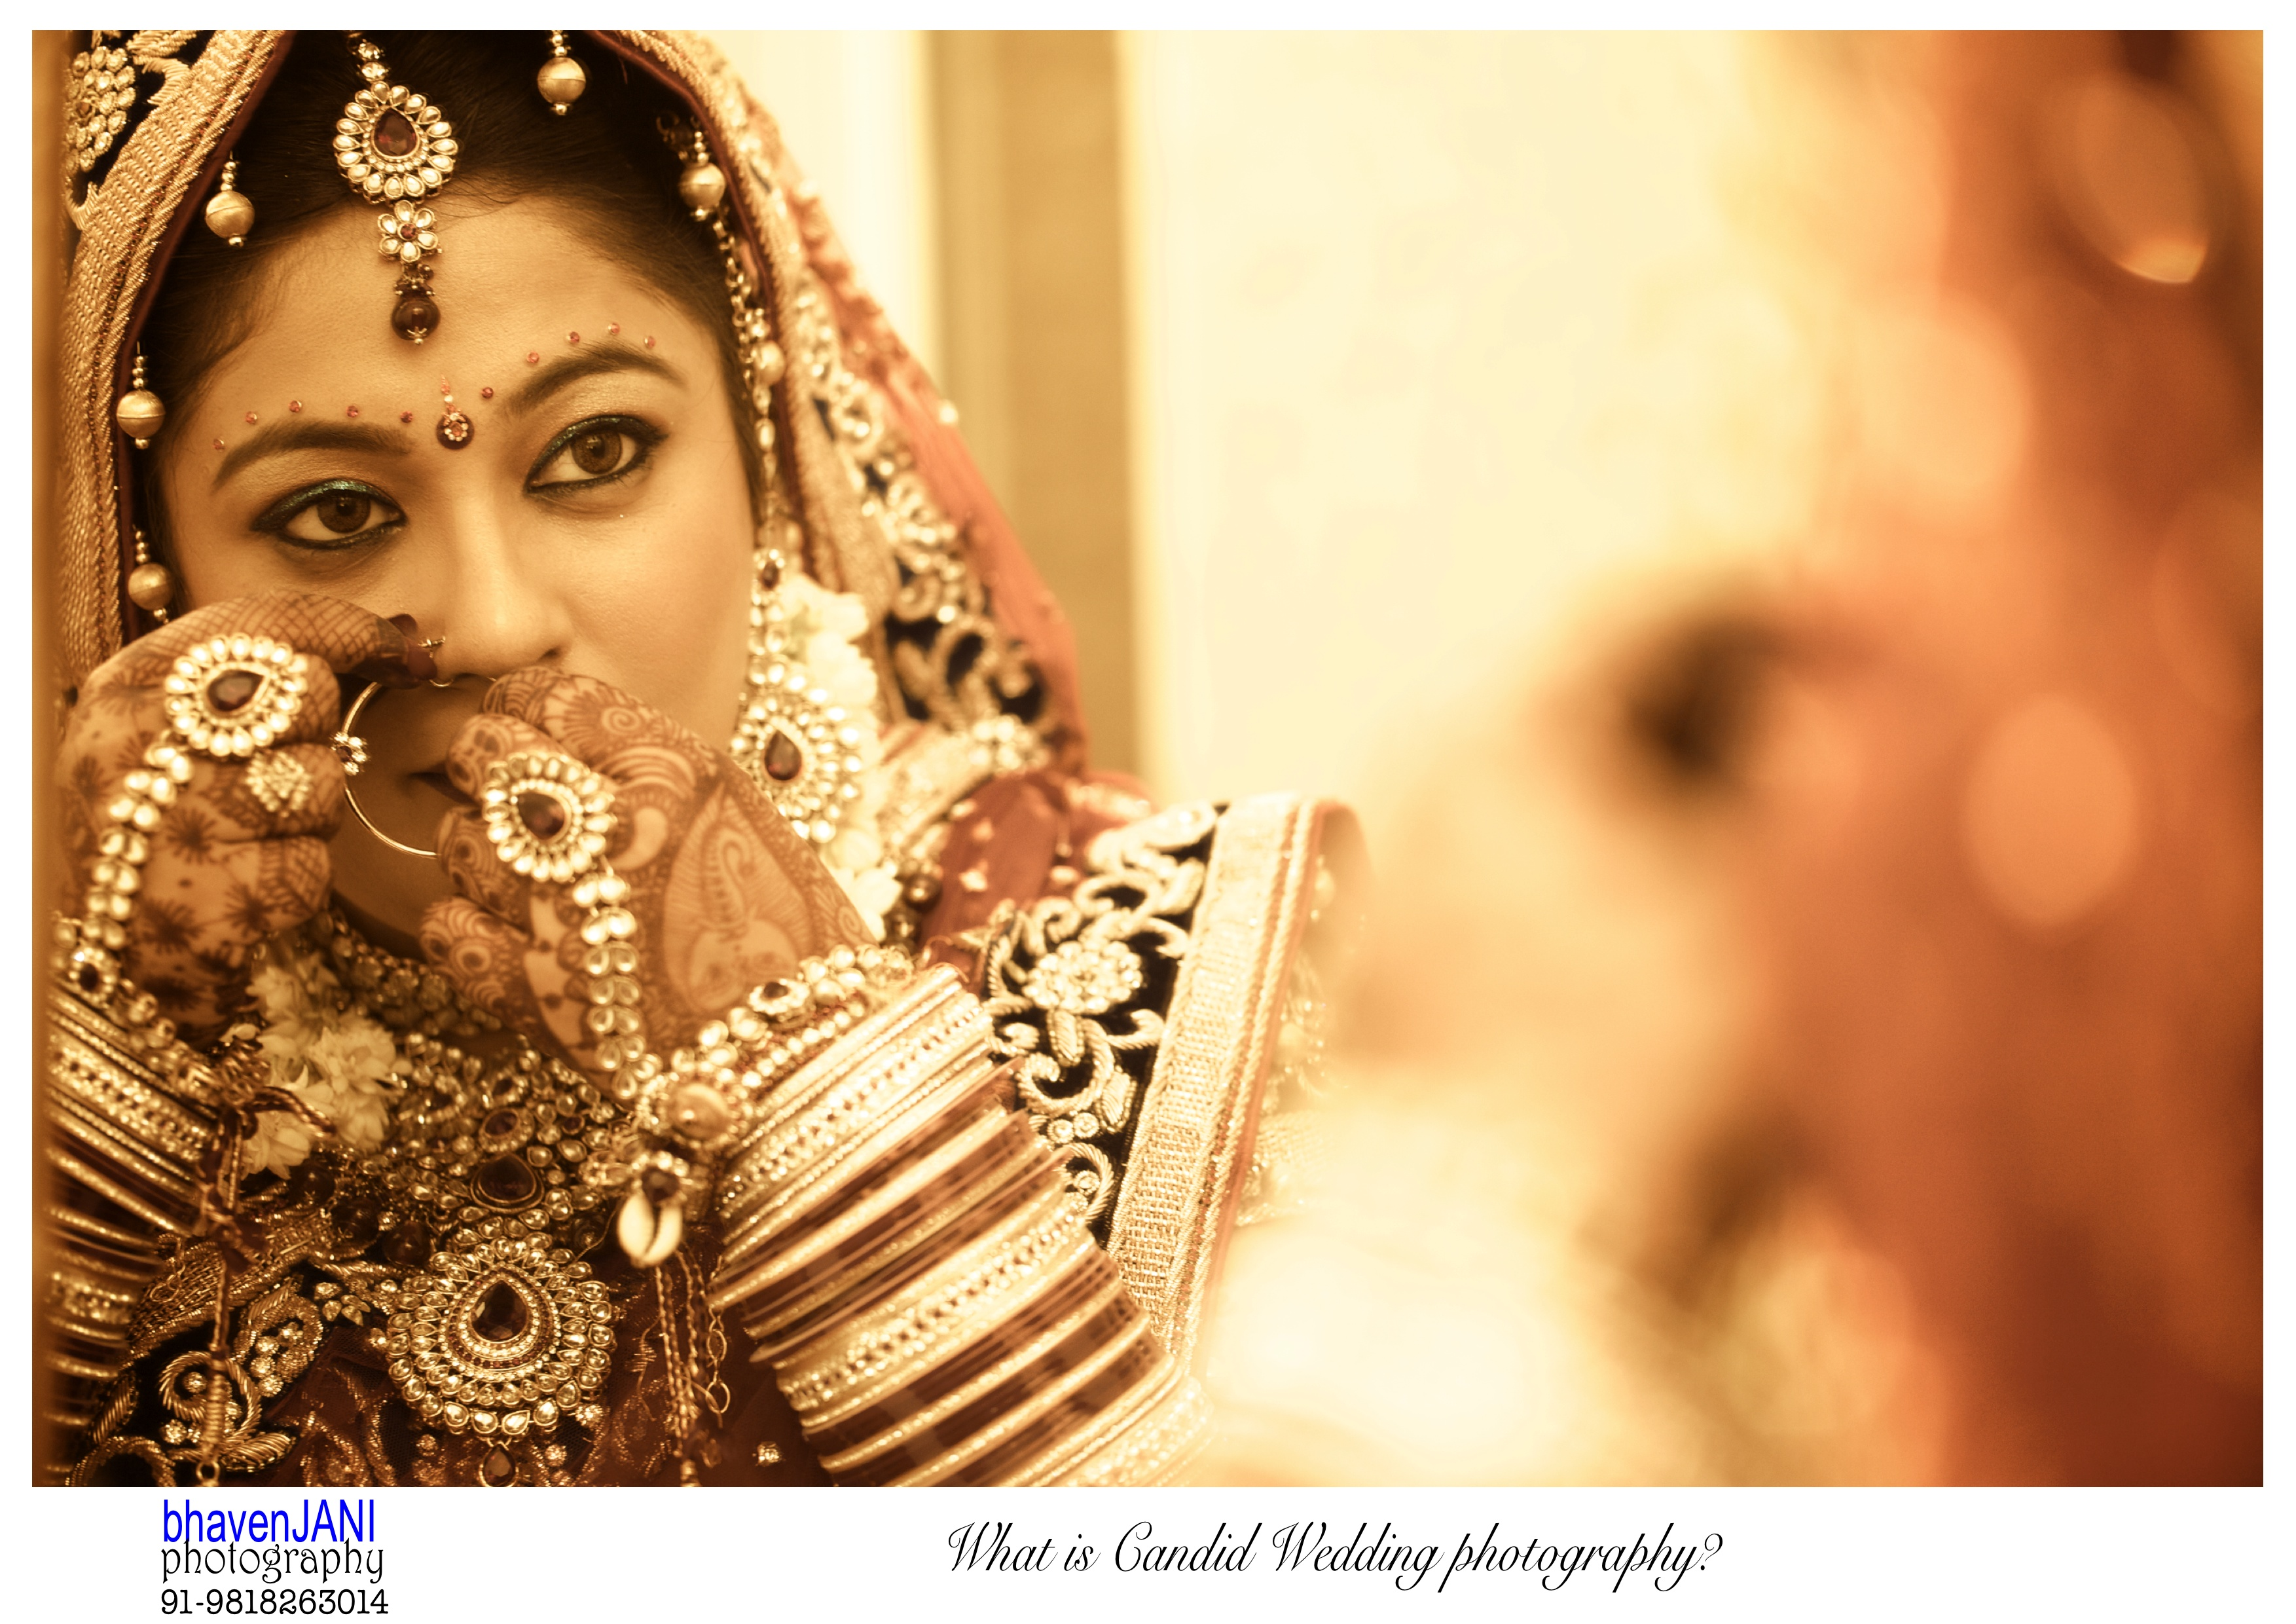 too struggle with trying to explain what Candid wedding photography ...: https://bhavenjani.wordpress.com/2013/08/18/candid-wedding...